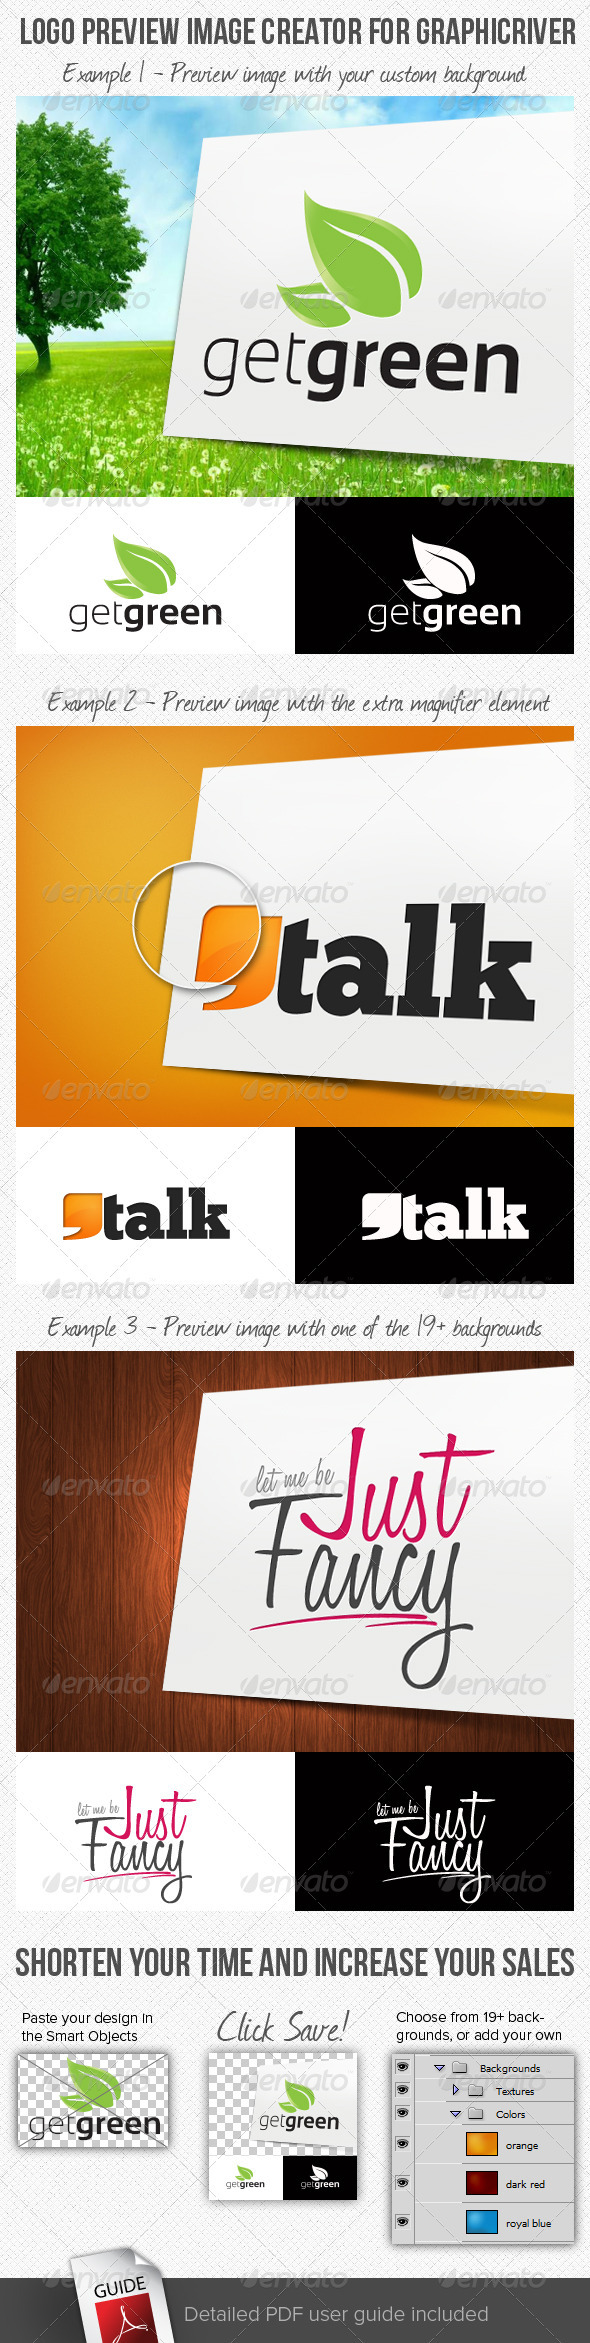 Logo Preview Image Creator for GraphicRiver - Logo Product Mock-Ups